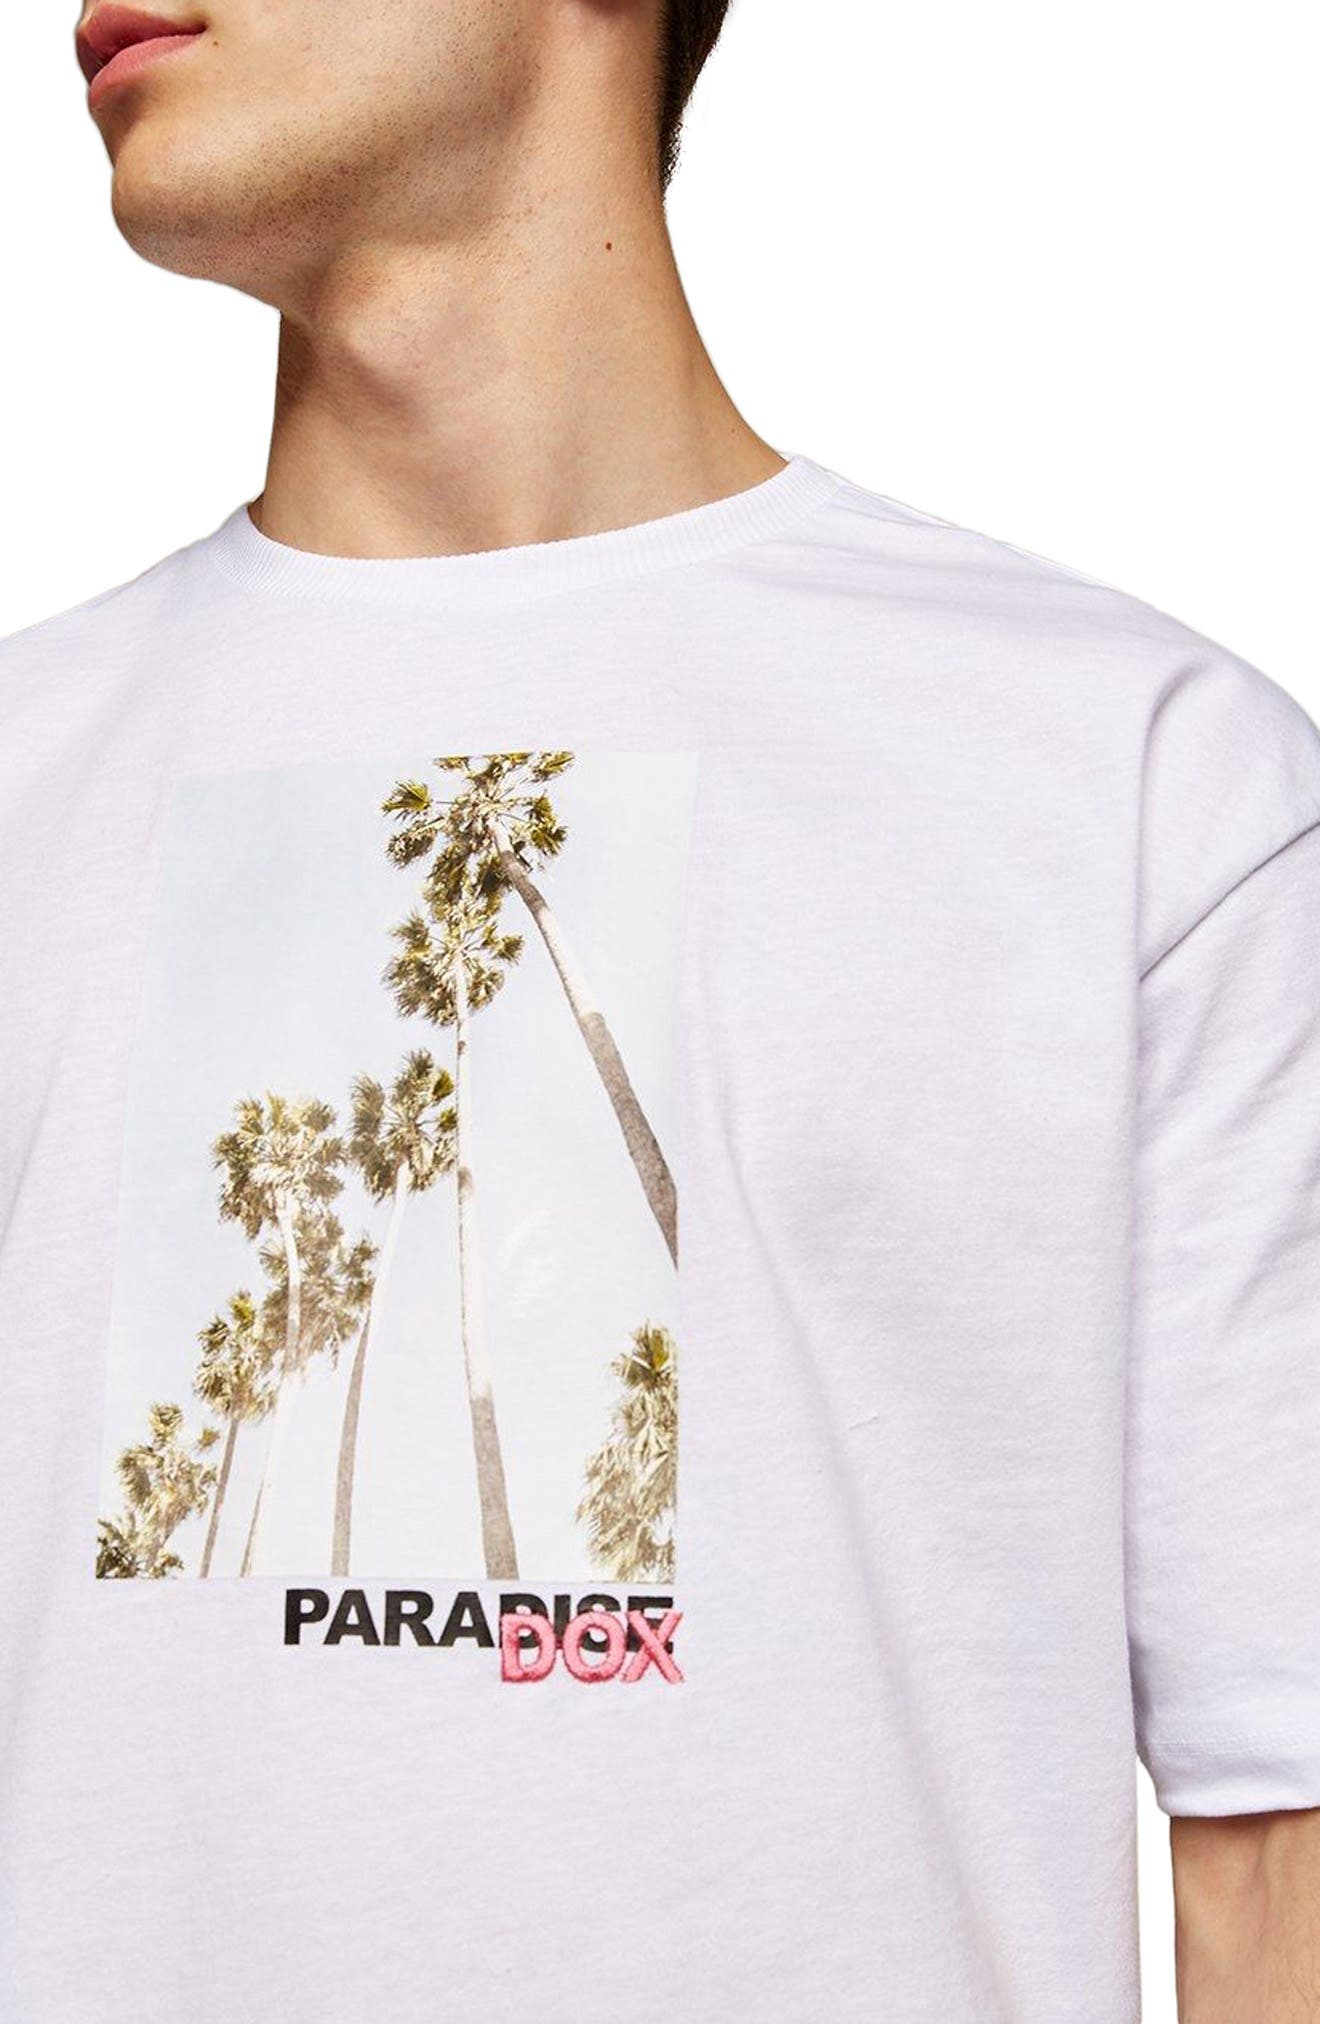 Paradox Graphic T-Shirt,                             Main thumbnail 1, color,                             WHITE MULTI